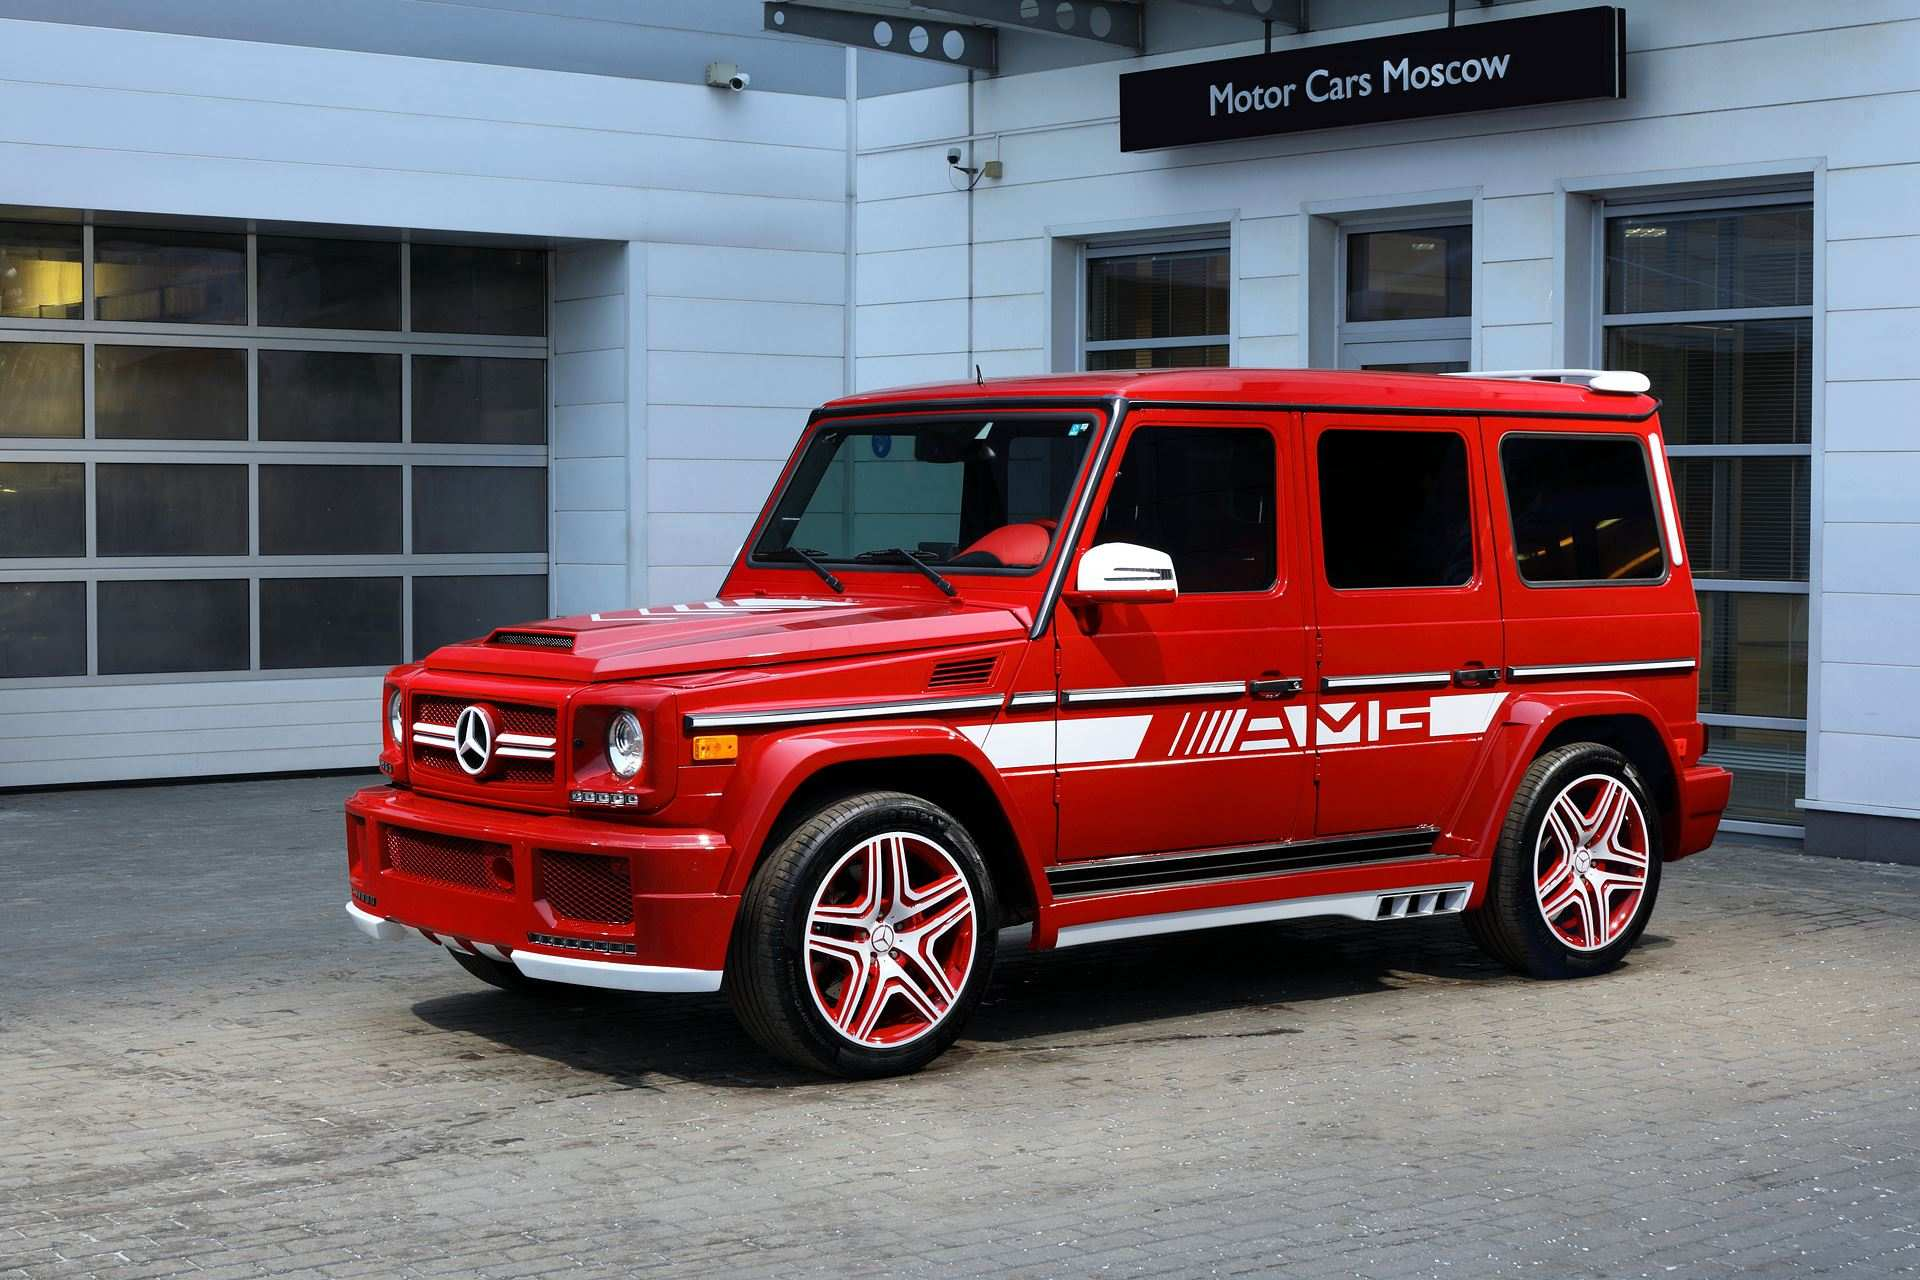 g63-amg-with-hamann-body-kit-and-topcar-interior-is-a-red-russian-rooster_8